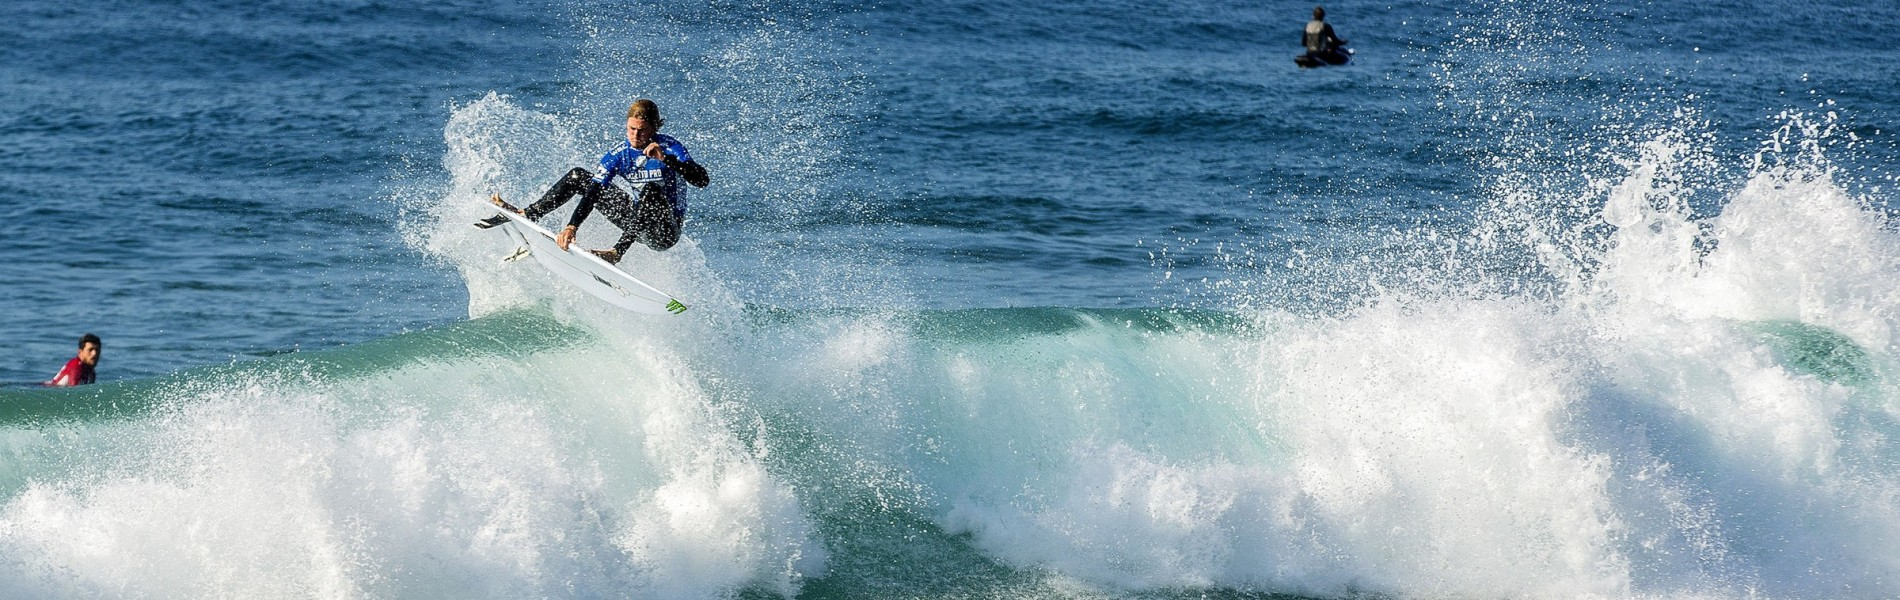 Ballito Pro South Africa - Day 5